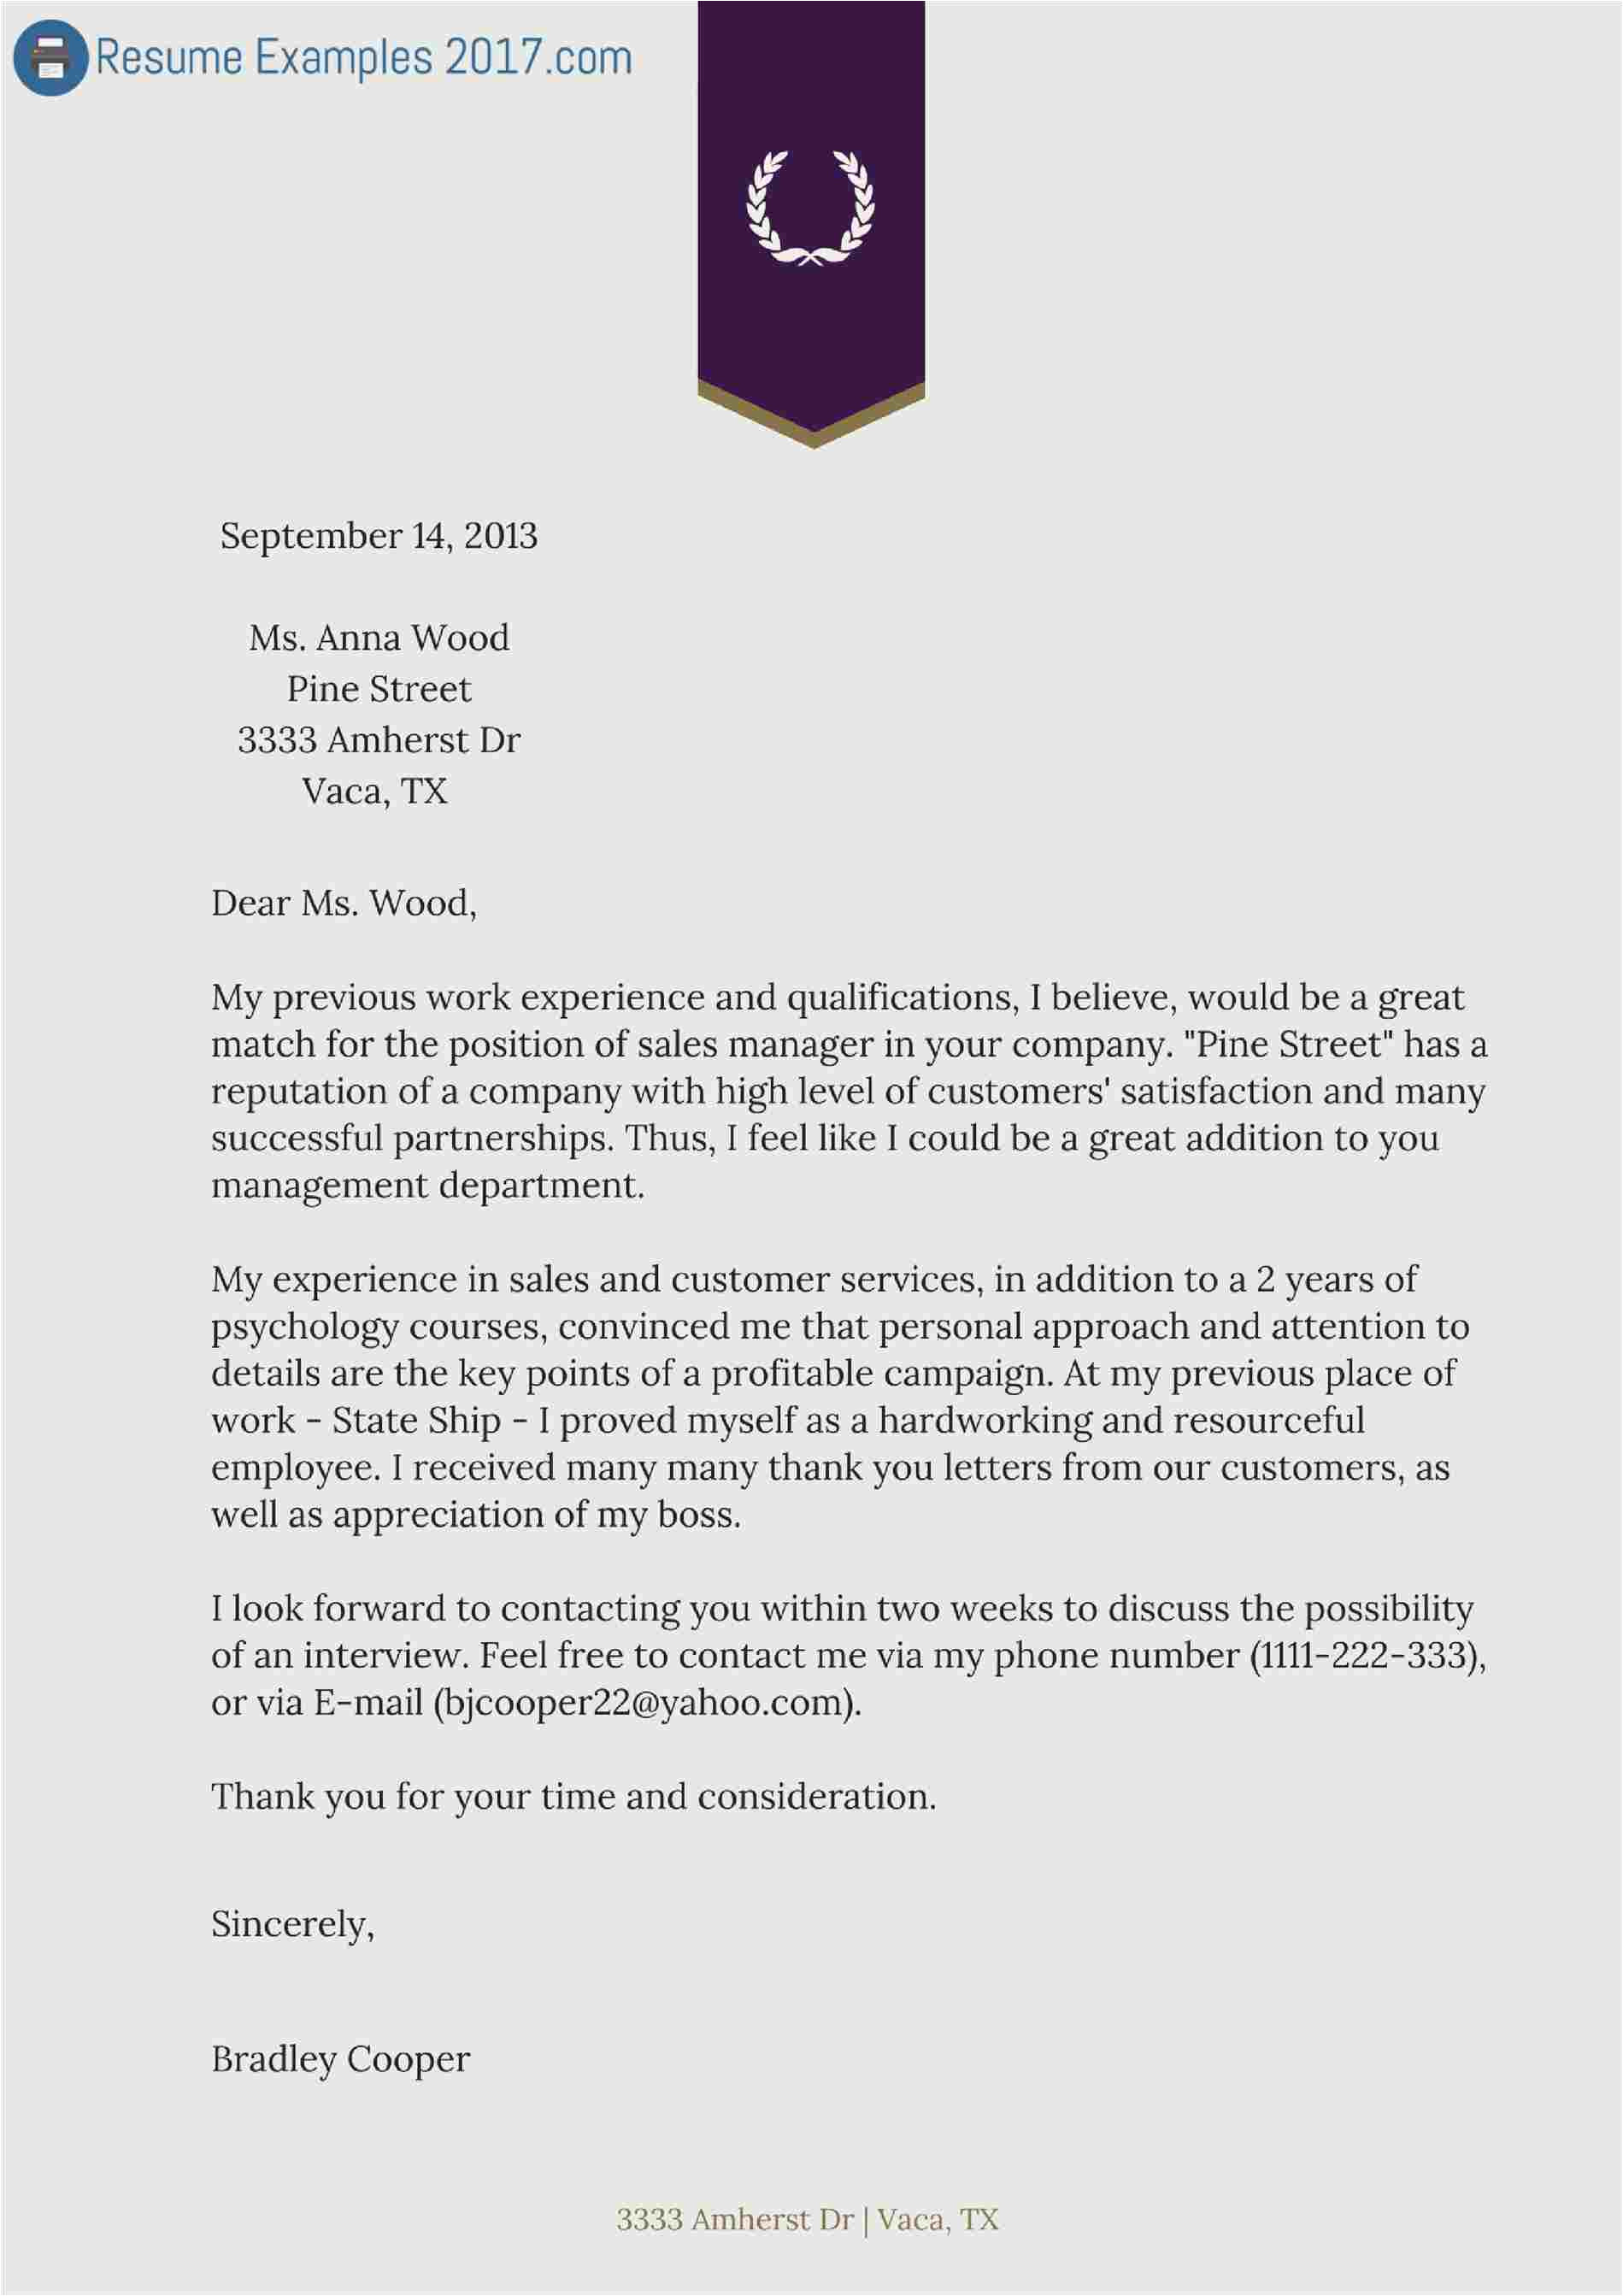 sales cover letter 2017